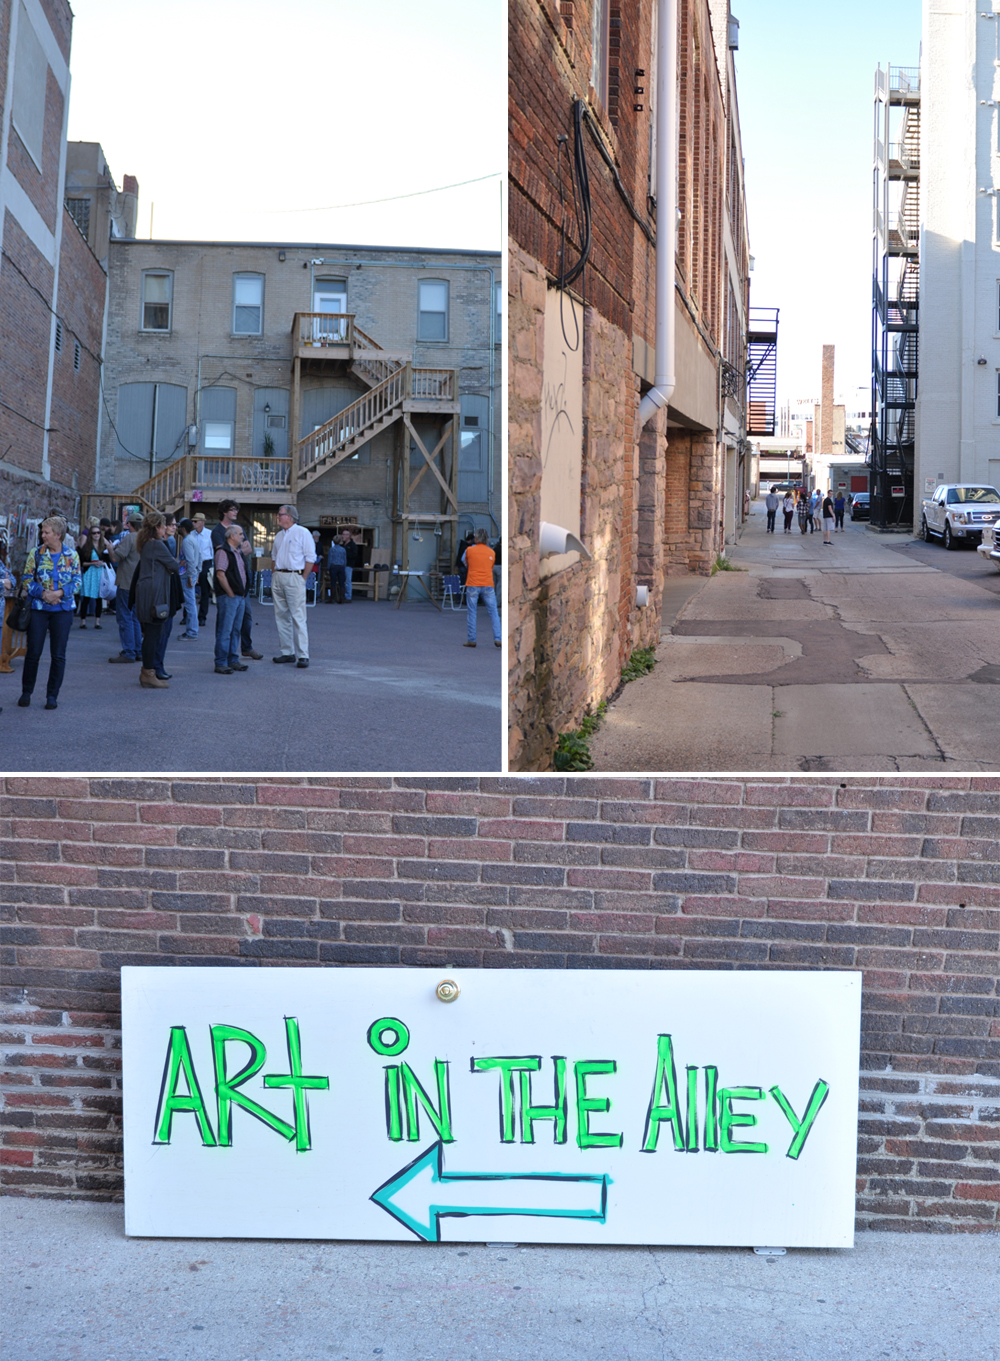 art-in-the-alley